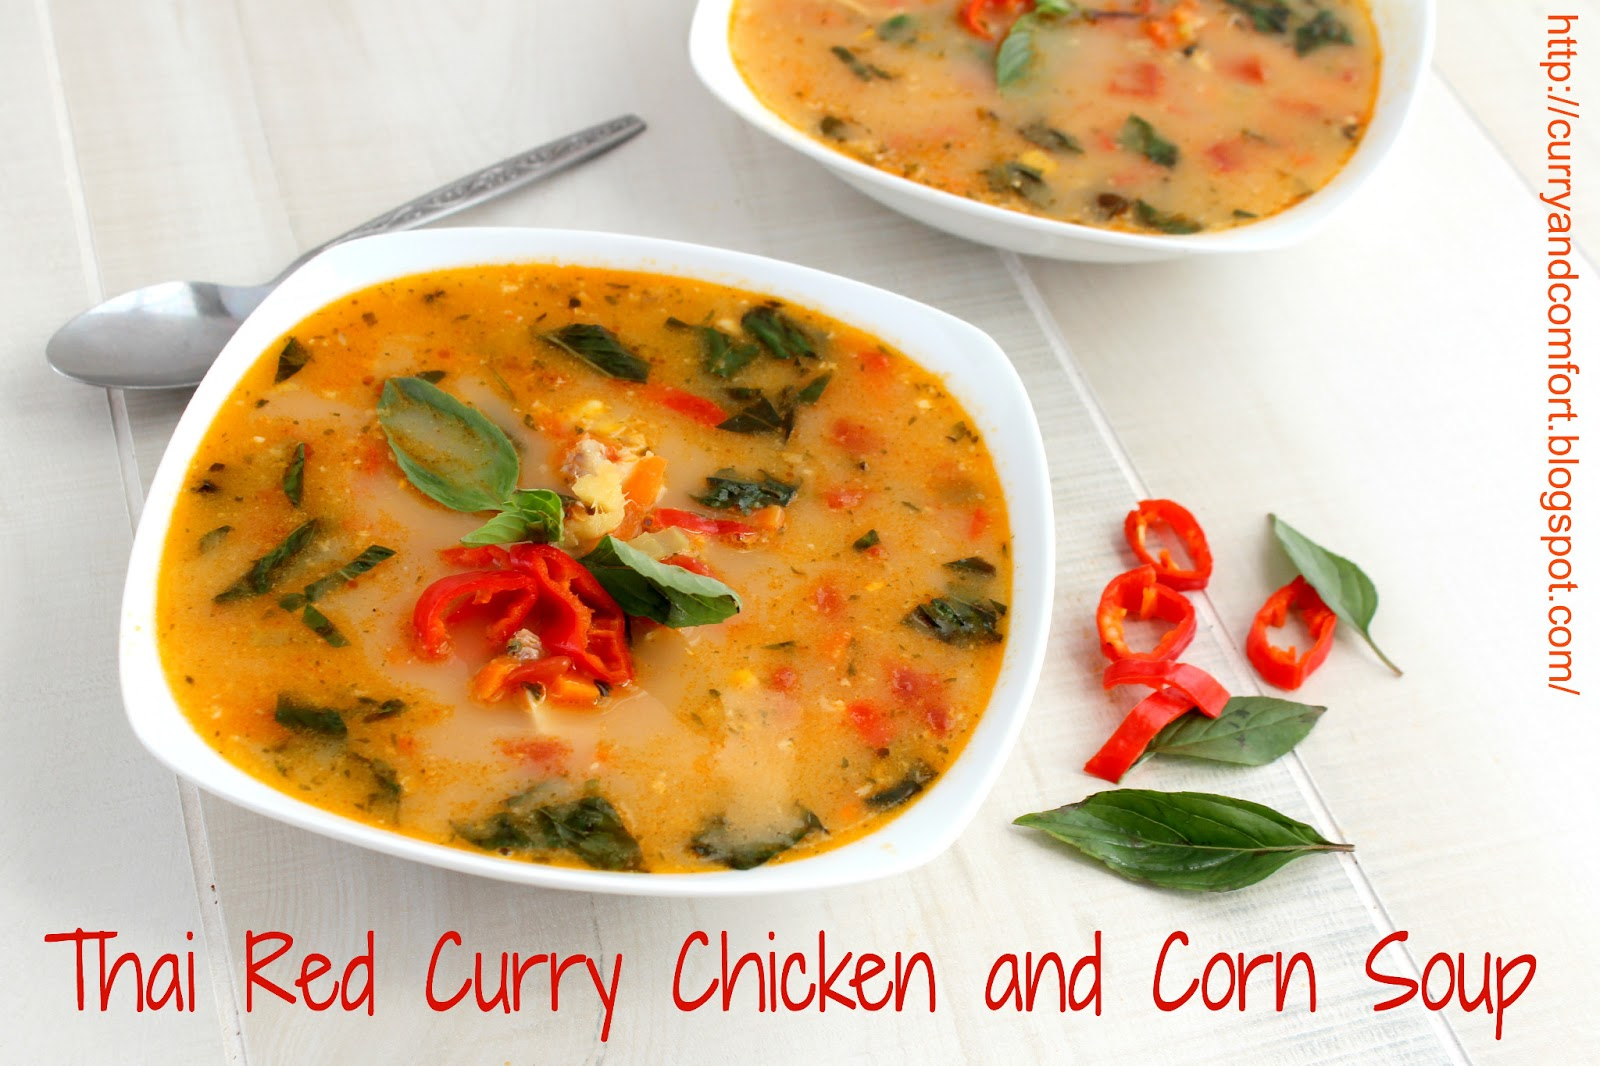 Curry and Comfort: Thai Red Curry Chicken and Corn Soup